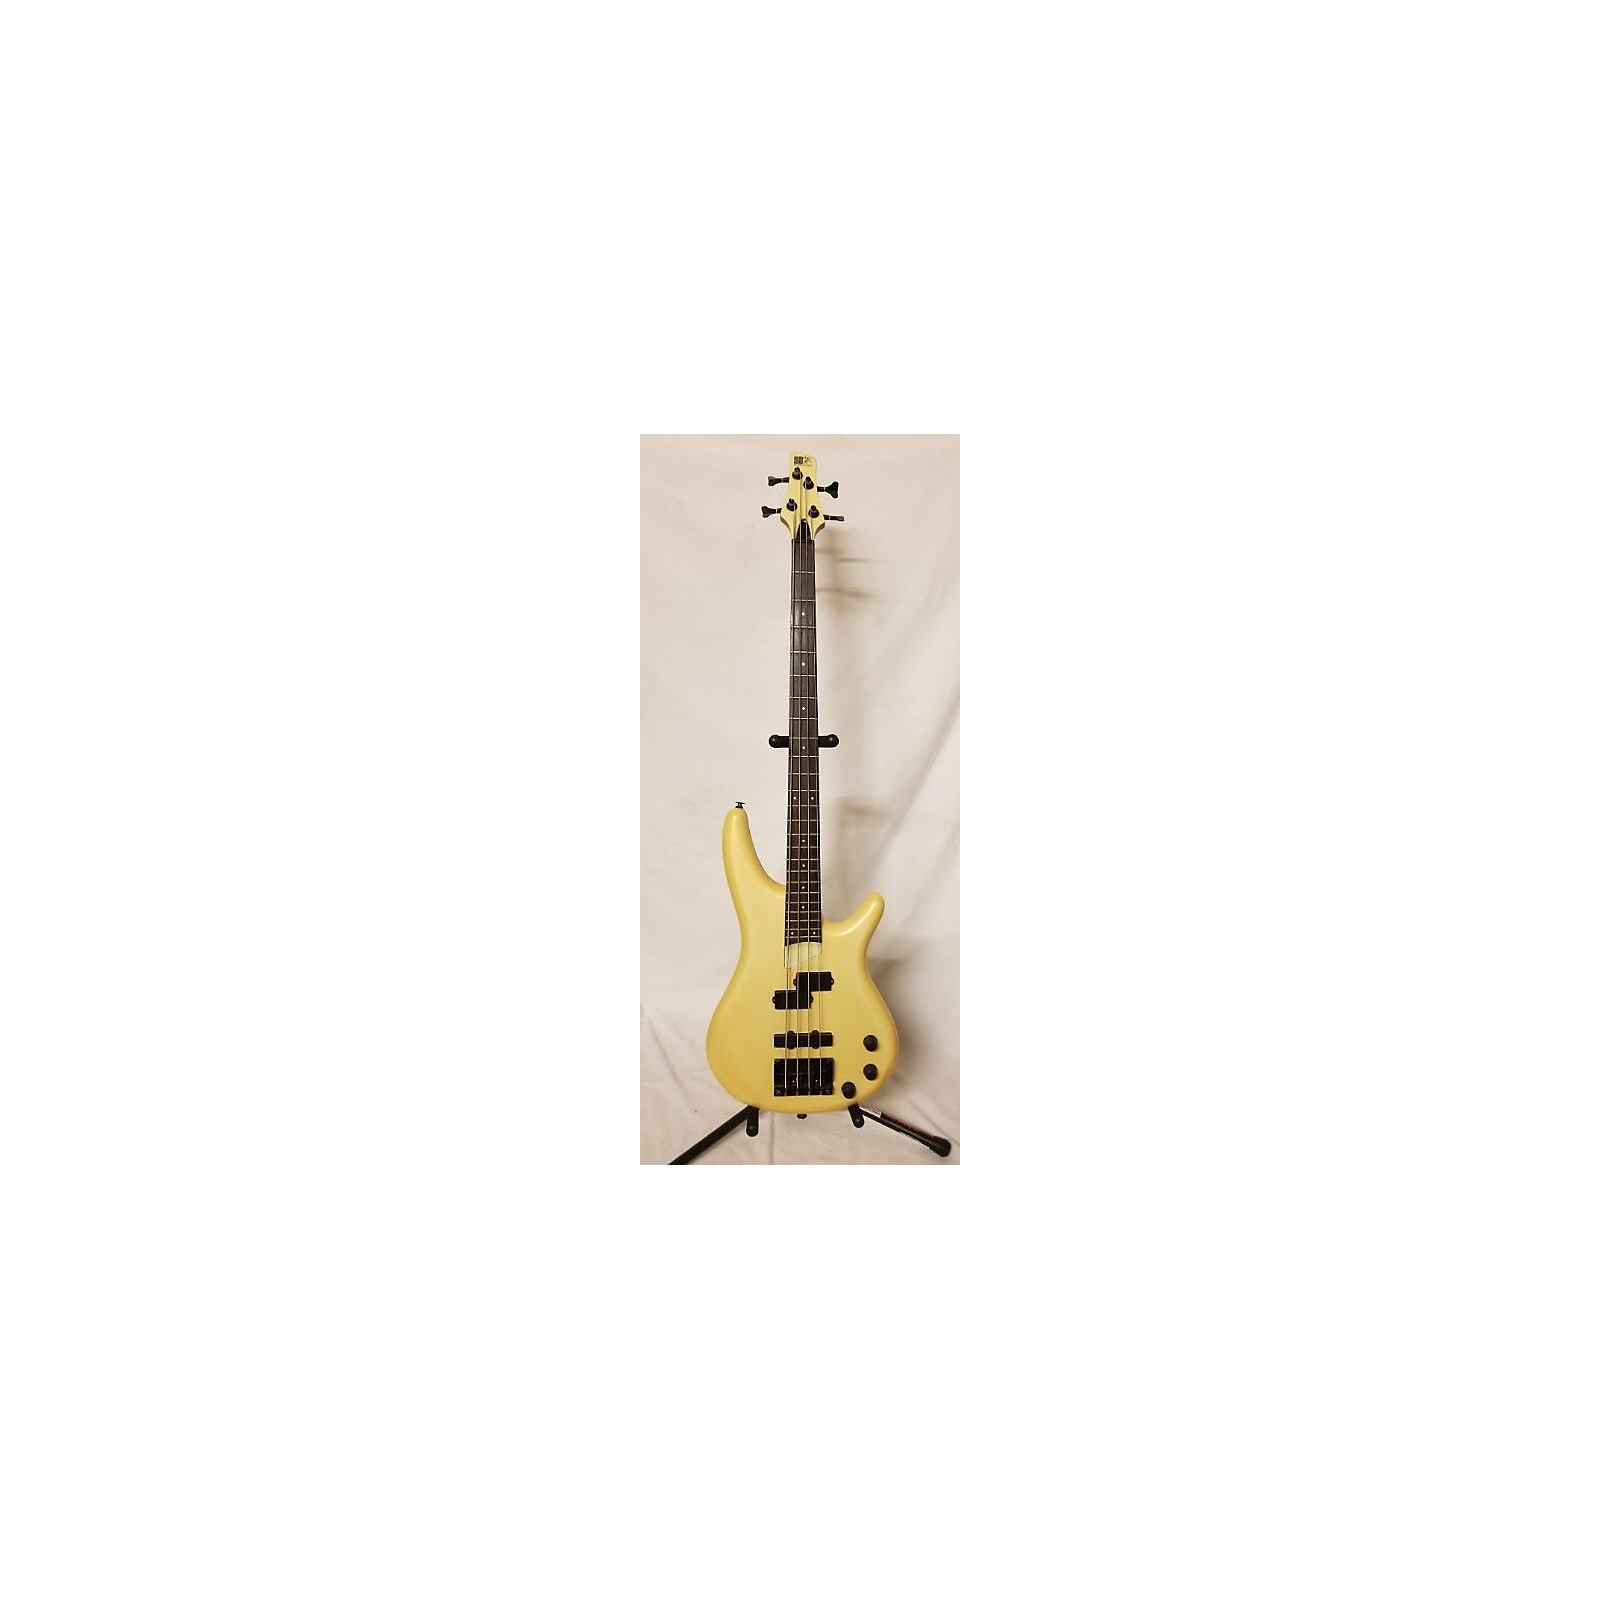 In Store Used Used SOUND GEAR SR600 Yellow Electric Bass Guitar